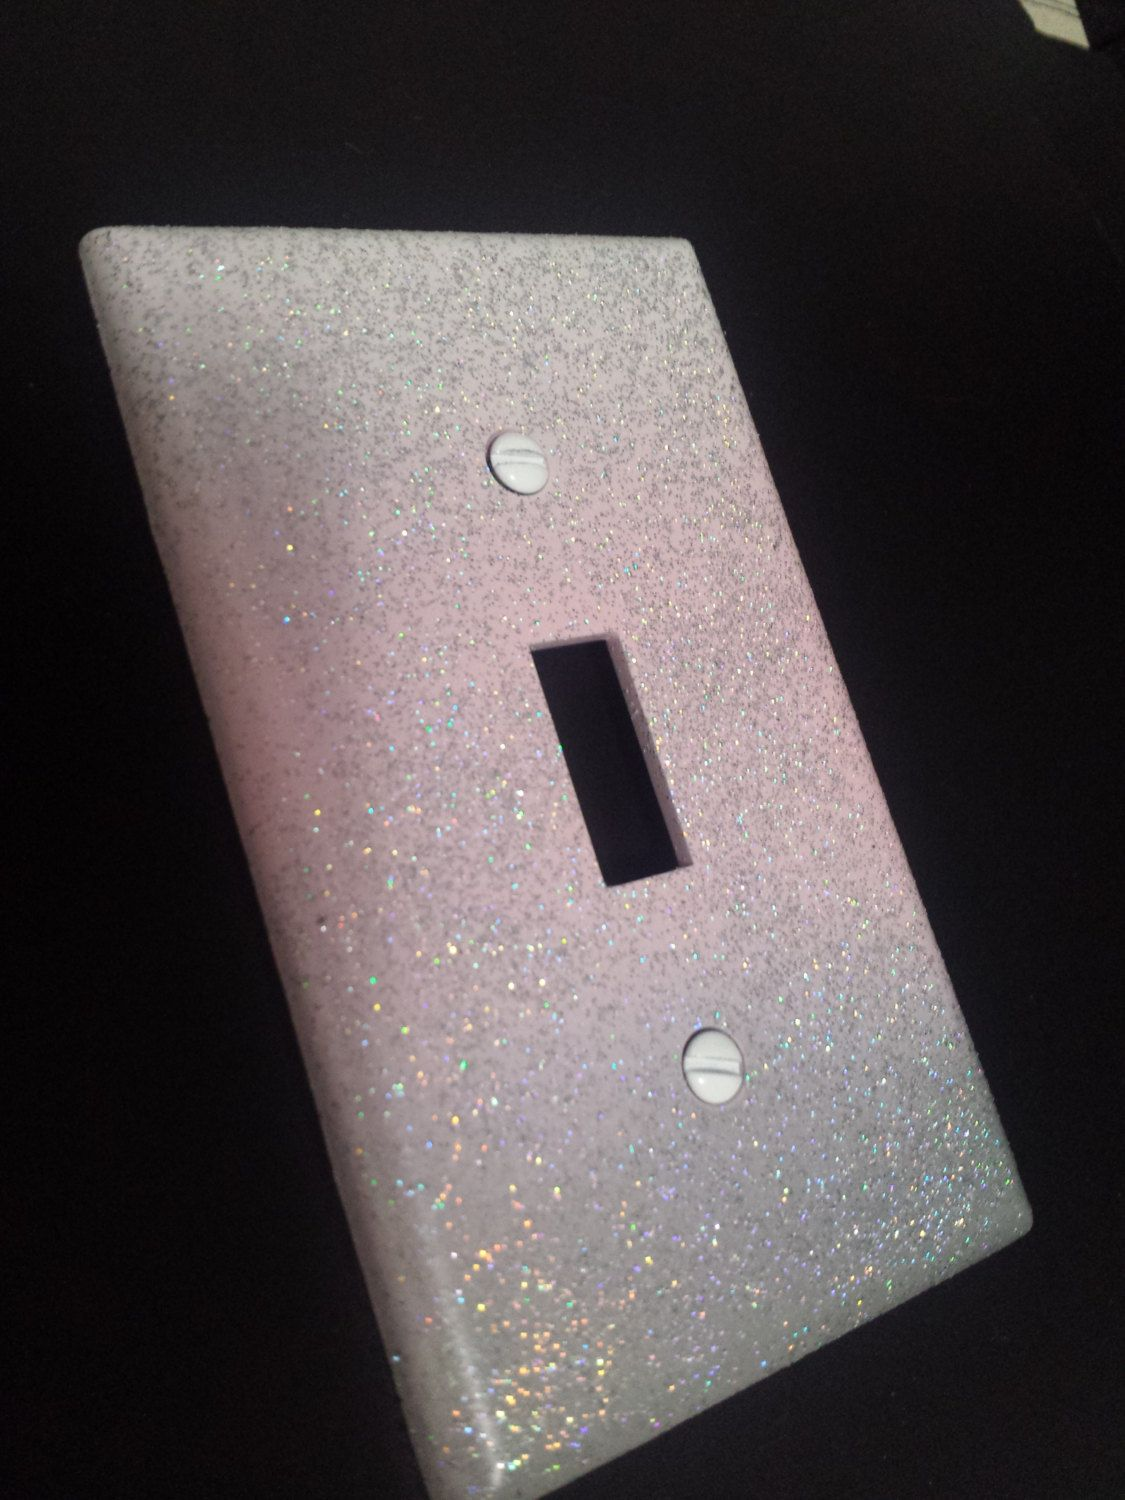 Unique Switchplates And Outlet Covers Sparkly Pink White Gray Ombre Style Glitter Light Switch